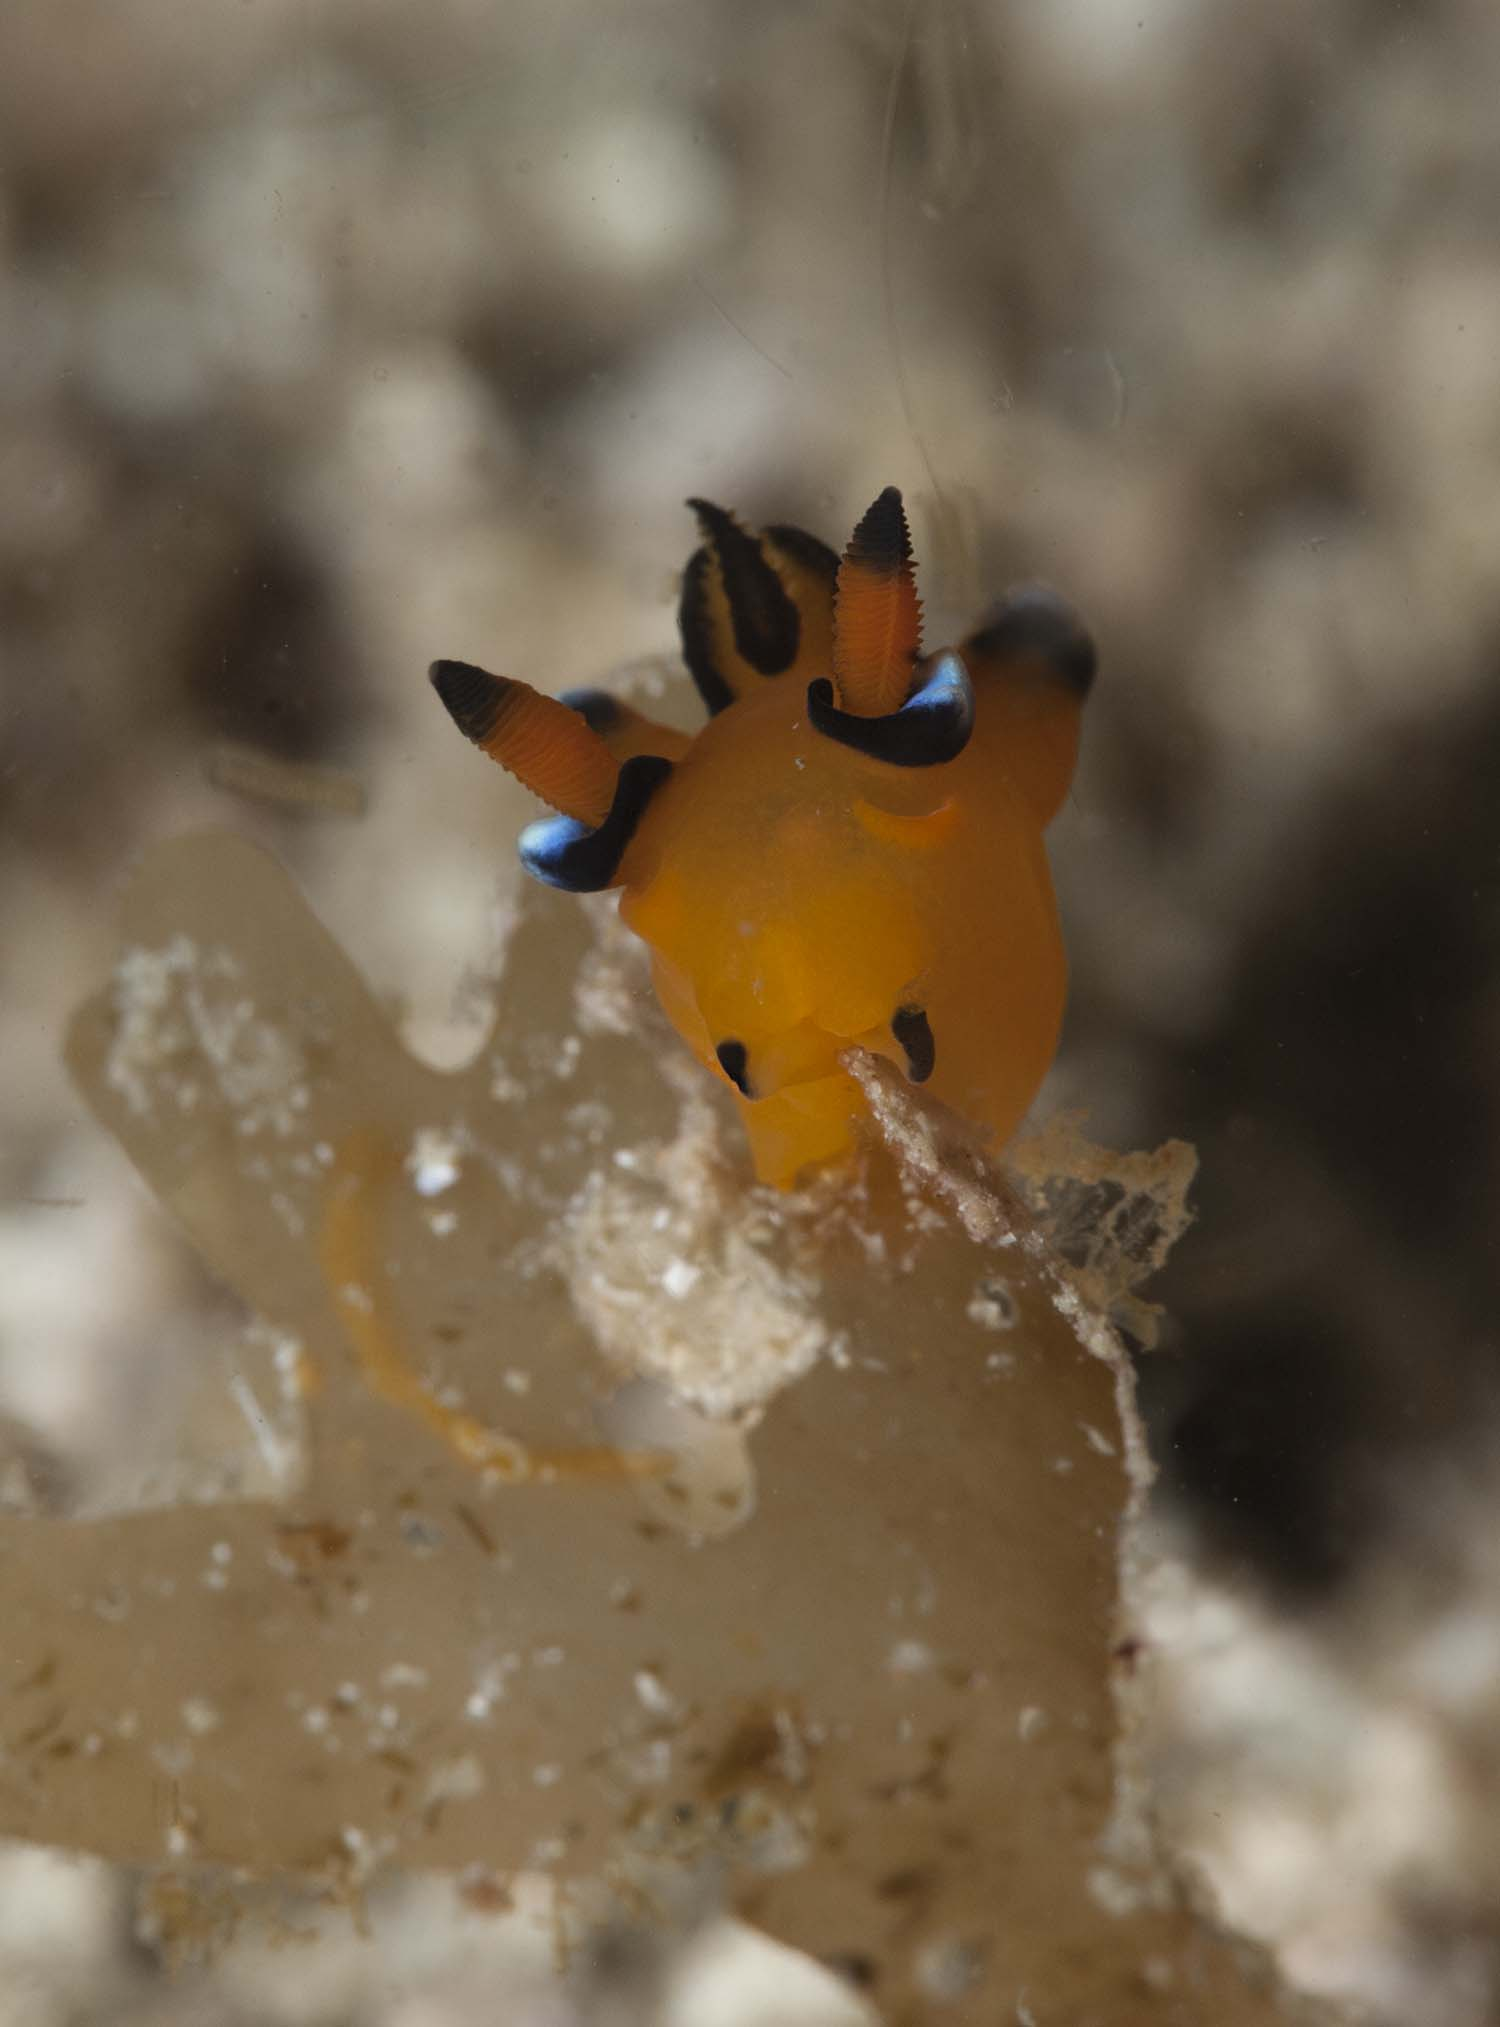 Nudibranch in Komodo 2015 by Ulrika Kroon